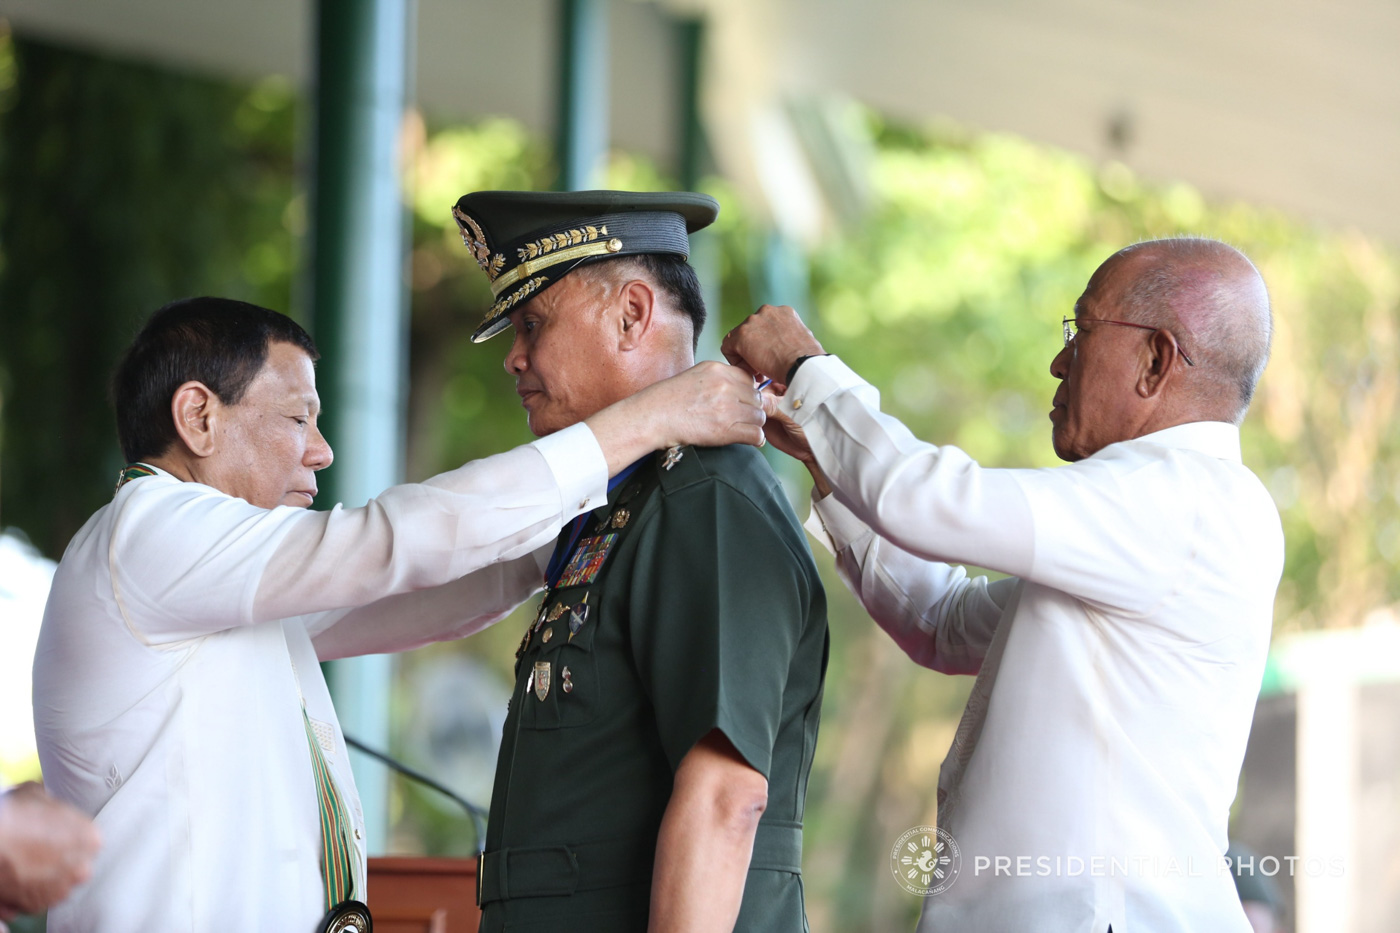 DISTINGUISHED SERVICE. President Rodrigo Duterte confers the Distinguished Service Star on Major General Joselito Reyes.